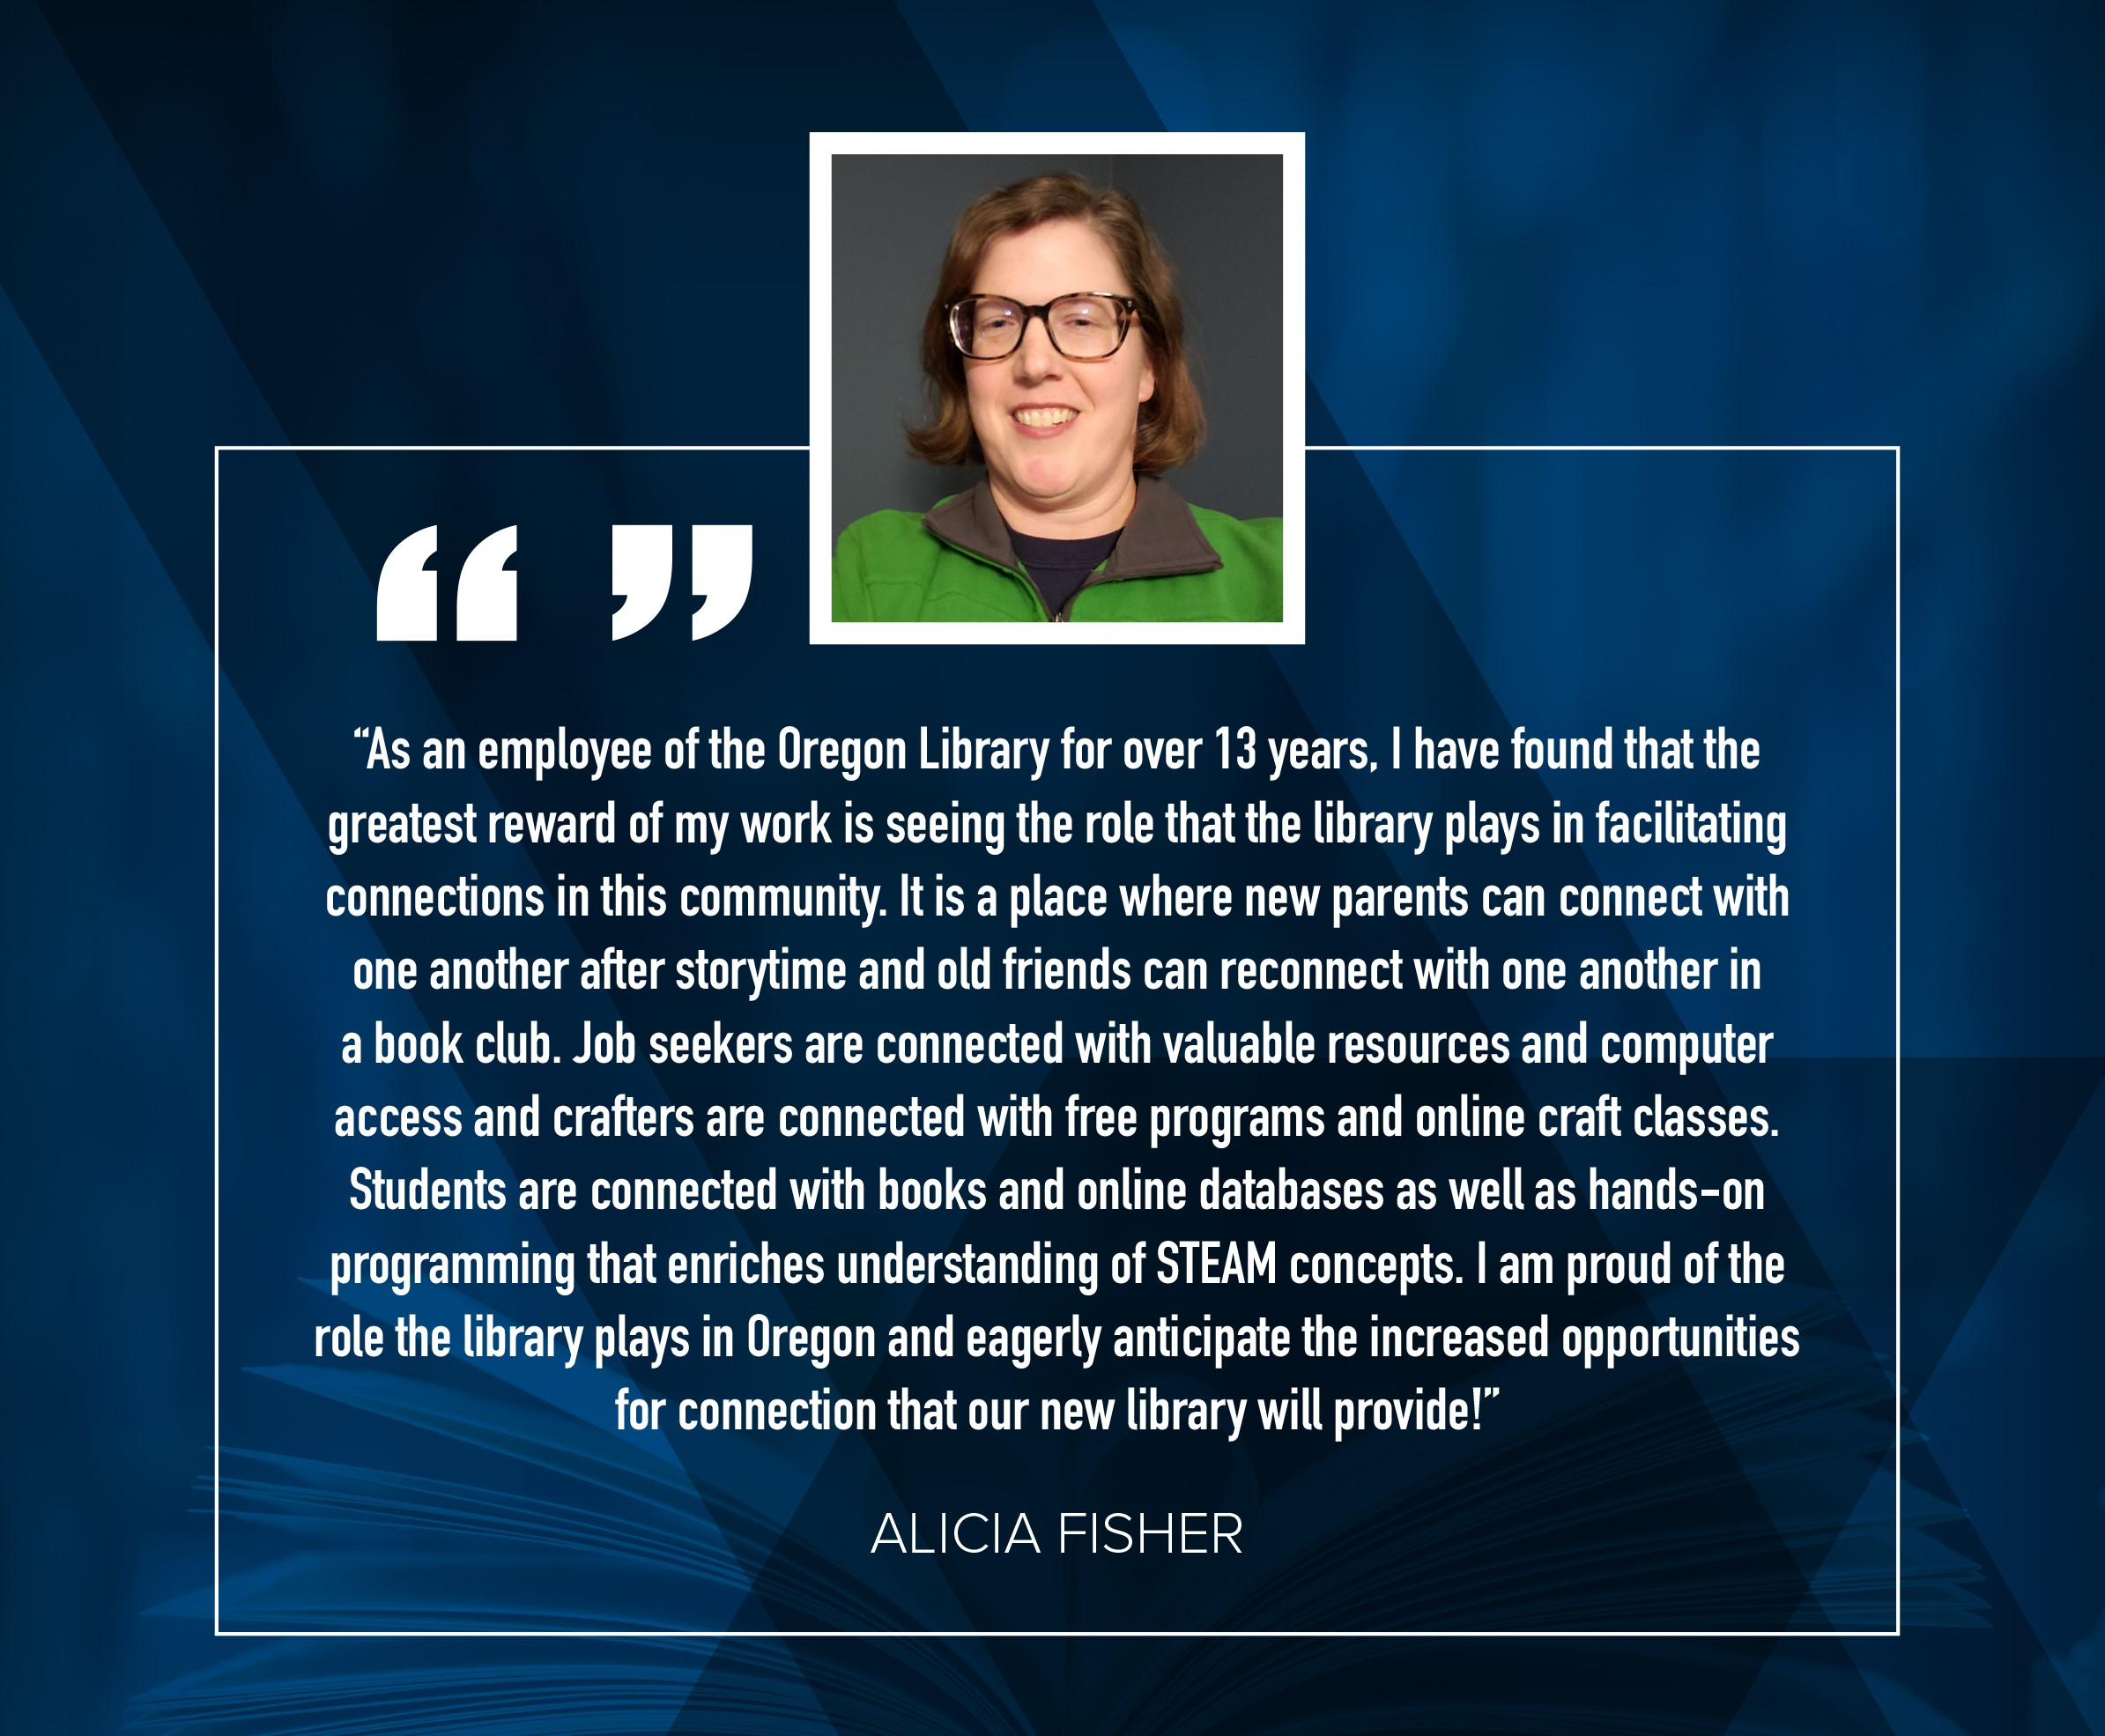 "Alicia Fisher ""As an employee of the Oregon Library for over 13 years, I have found that the greatest reward of my work is seeing the role that the library plays in facilitating connections in this community.  It is a place where new parents can connect with one another after storytime and old friends can reconnect with one another in a book club.  Job seekers are connected with valuable resoruces and computer access and crafters are connected with free programs and online craft classes.  Students are connected with books and online databases as well as hands-on programming that enriches understanding of STEAM concepts.  I am proud of the role the library plays in oregon and eagerly anticipate the increased opportunities for connection that our new library wil provide!"""